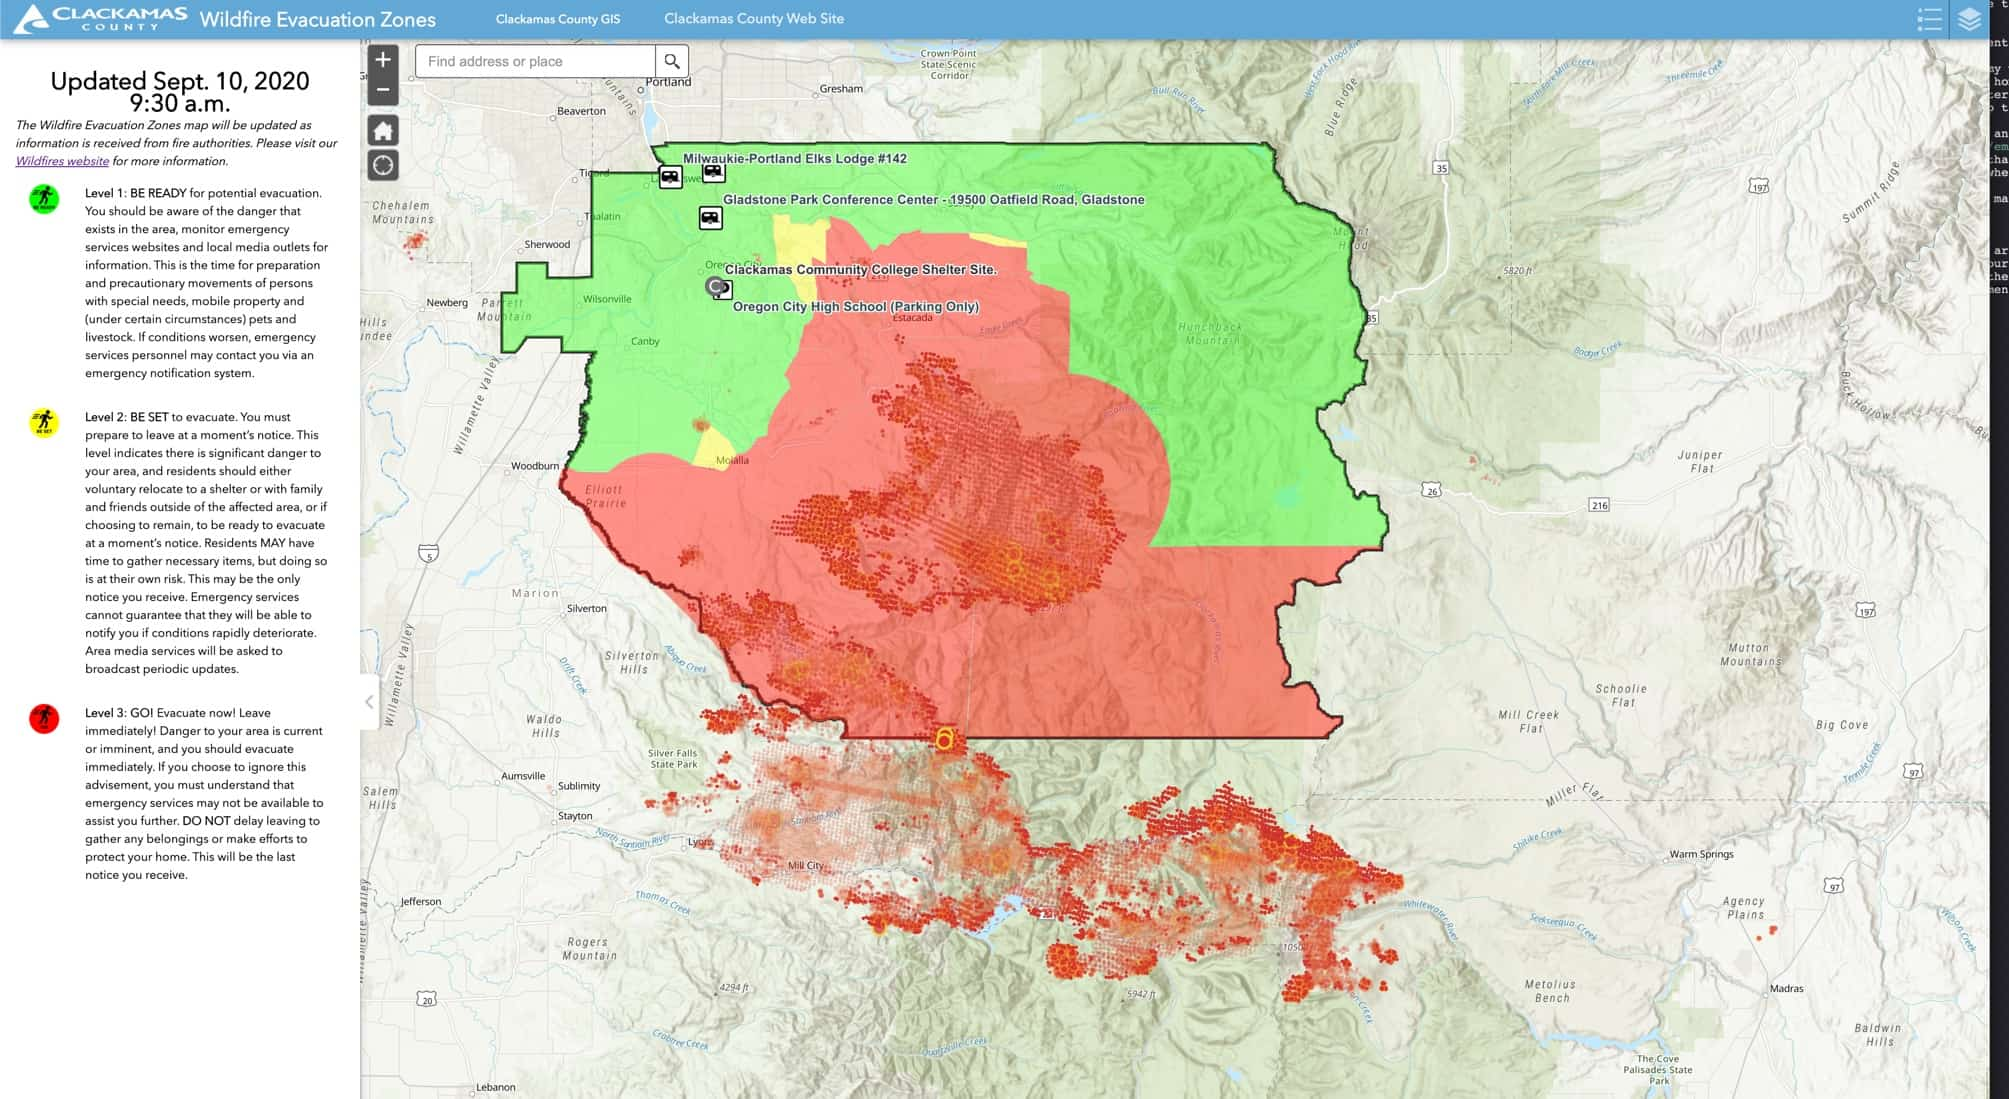 Map of the wildfires in our county